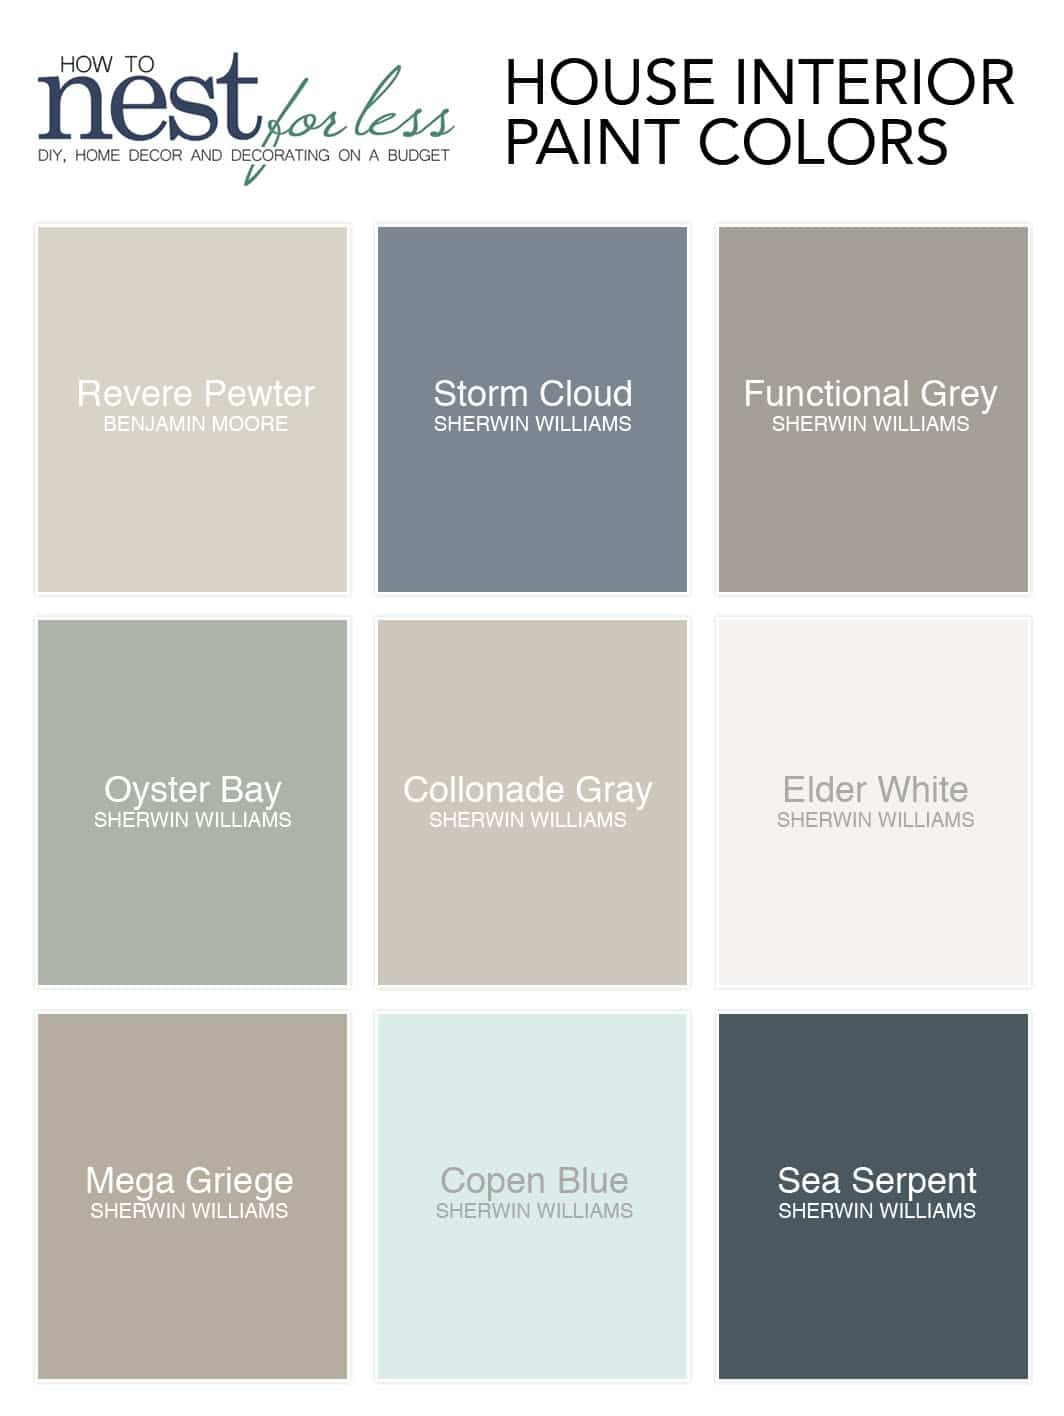 Paint colors my house how to nest for less Sherwin williams collonade gray exterior